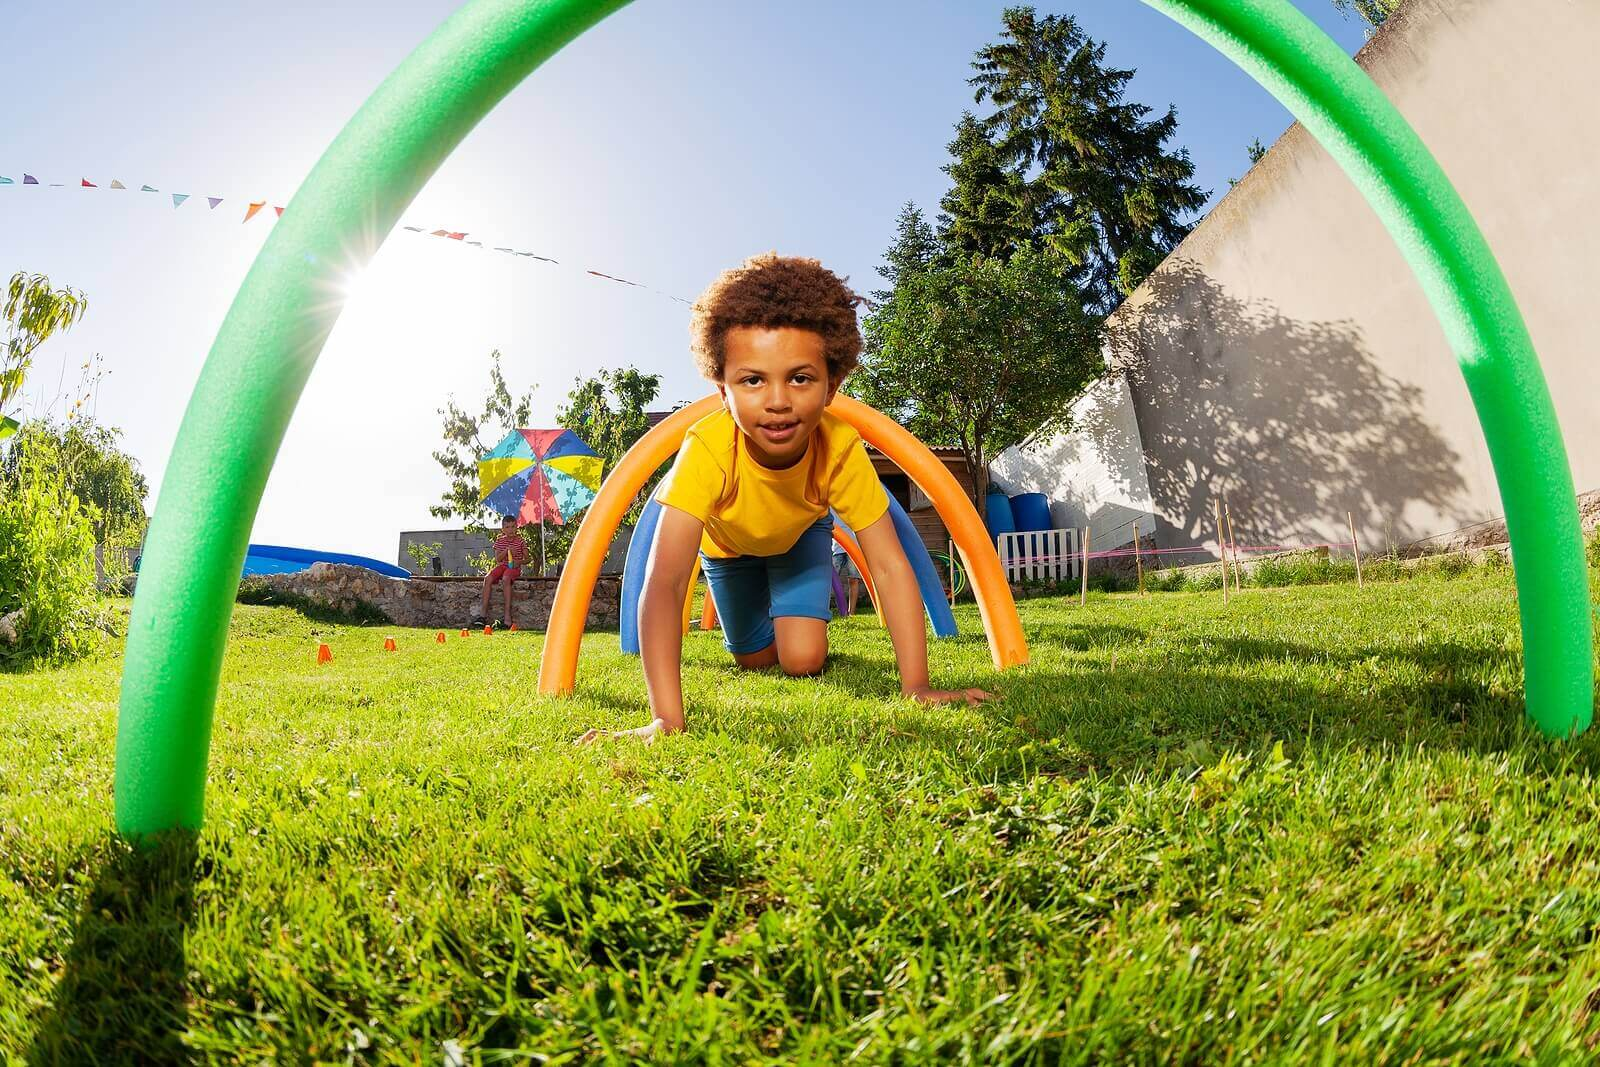 8 Games to Help Your Children Develop Gross Motor Skills